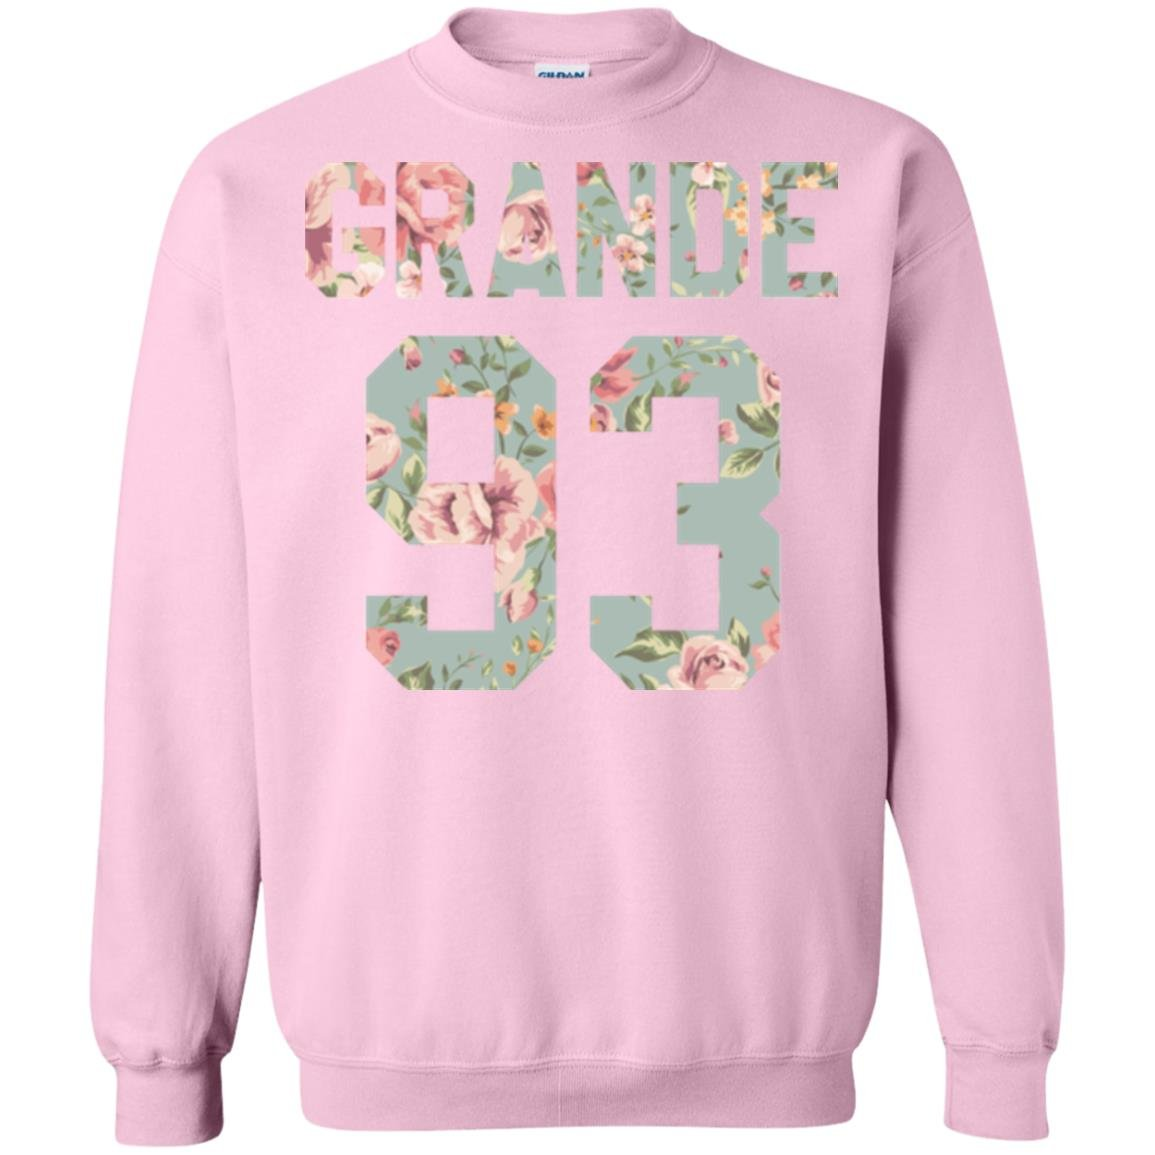 Hensley Collection Ariana Grande Sweatshirt, Dangerous Woman, 93 Birth Year, 1993 Flower Crewneck, Perfect World Tour Gift for The Arianator Fan